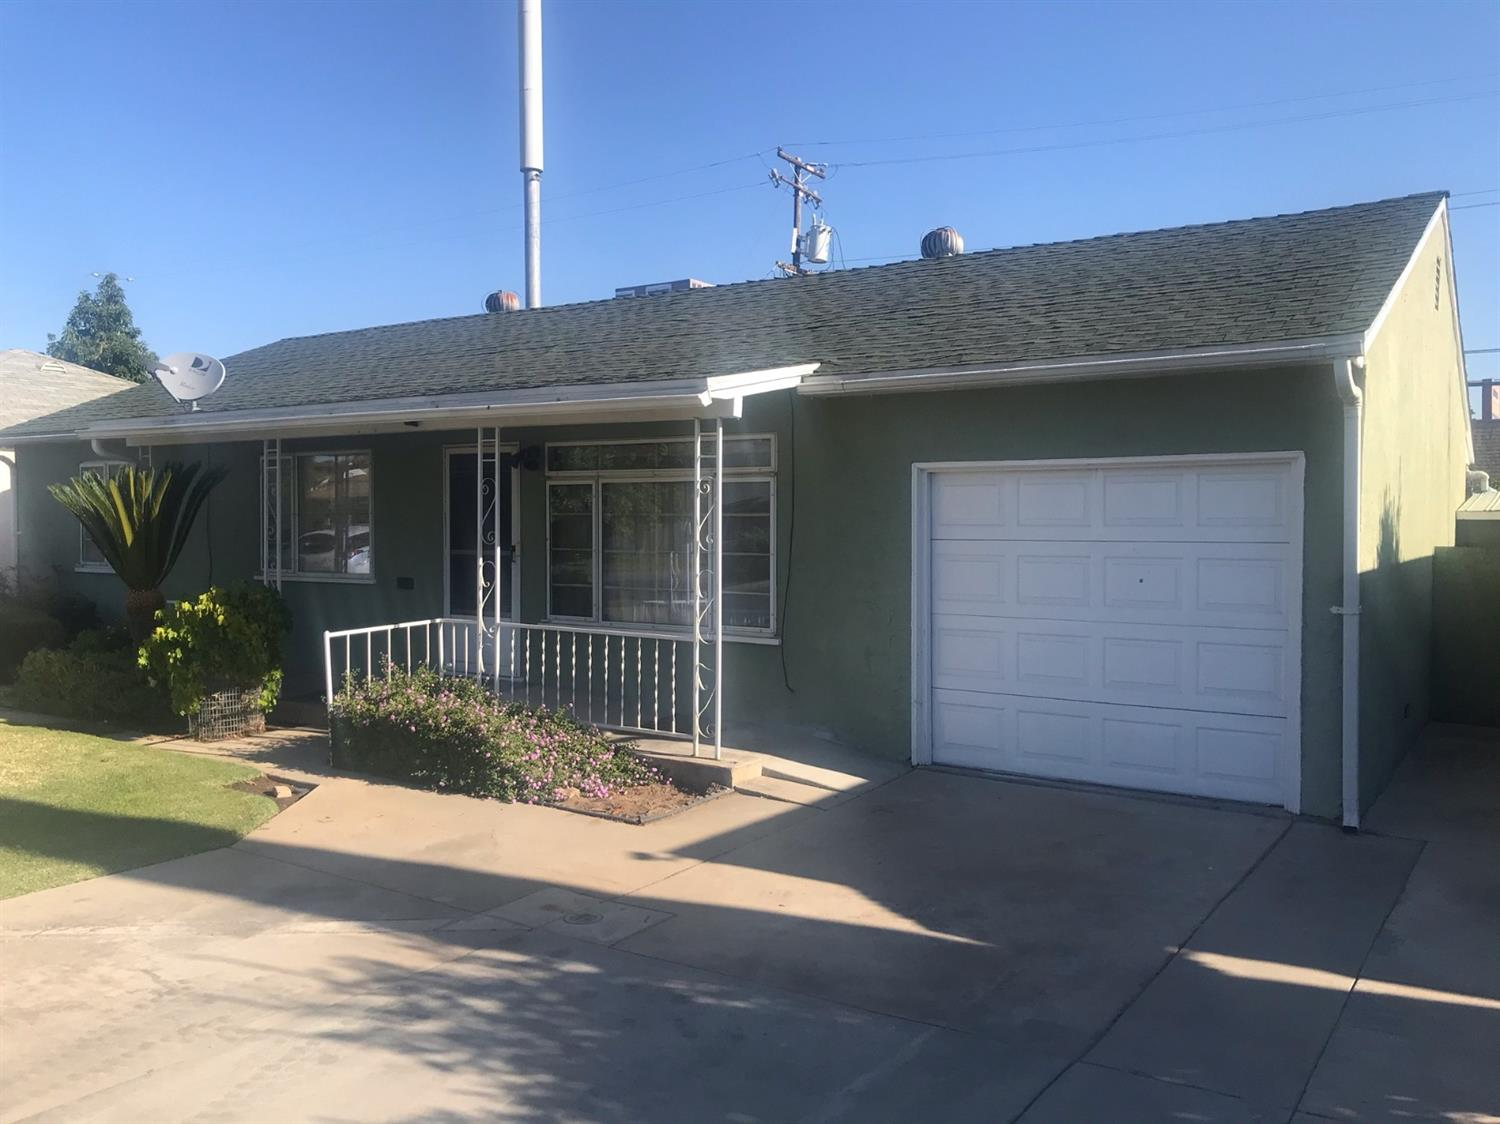 Photo of 4063 E El Monte Way, Fresno, CA 93702